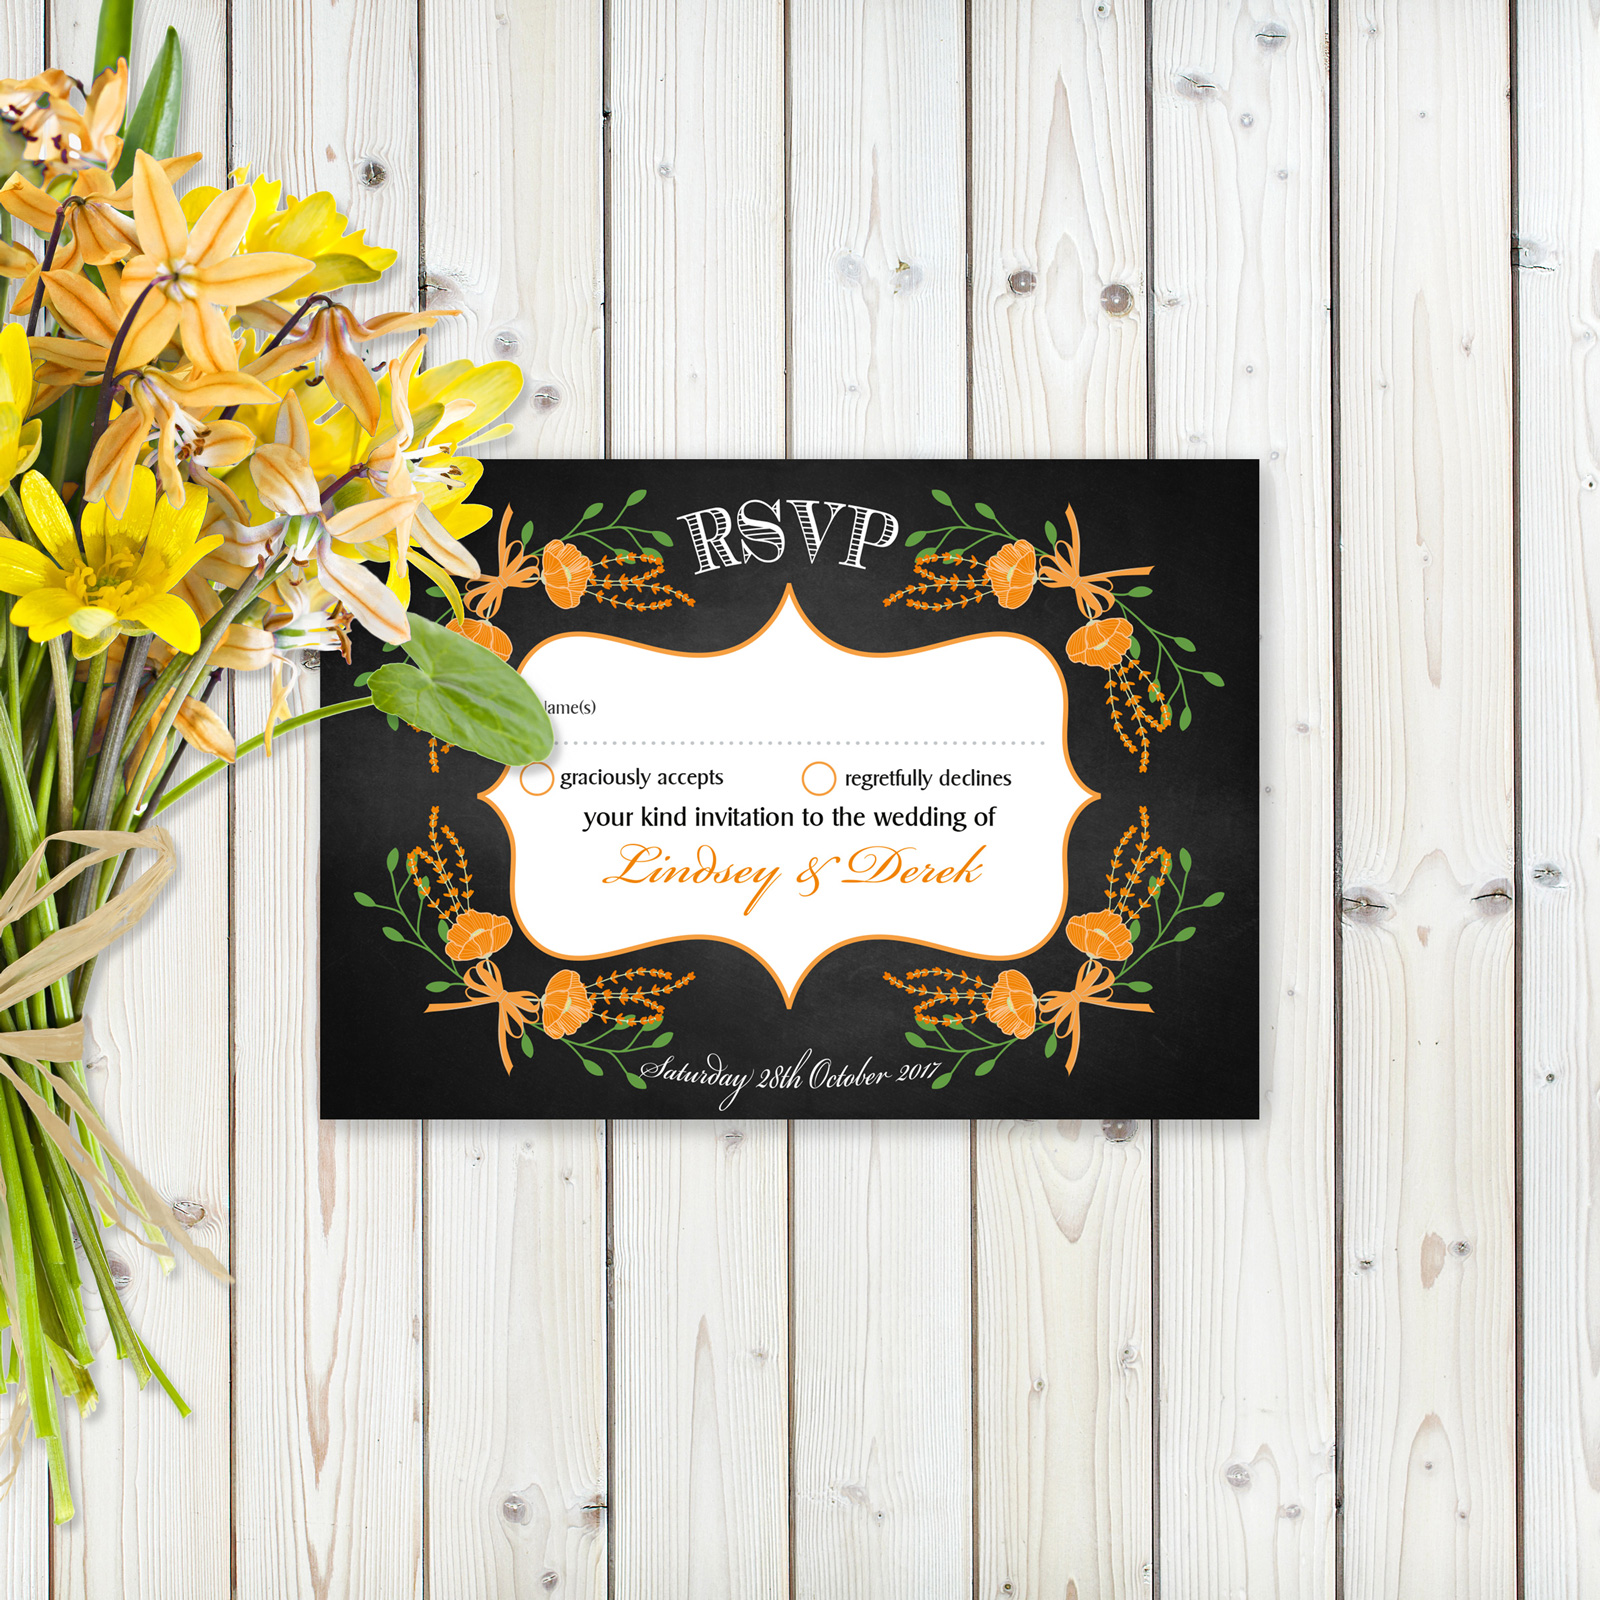 Floral Fantasy Orange on Chalkboard - RSVP Cards